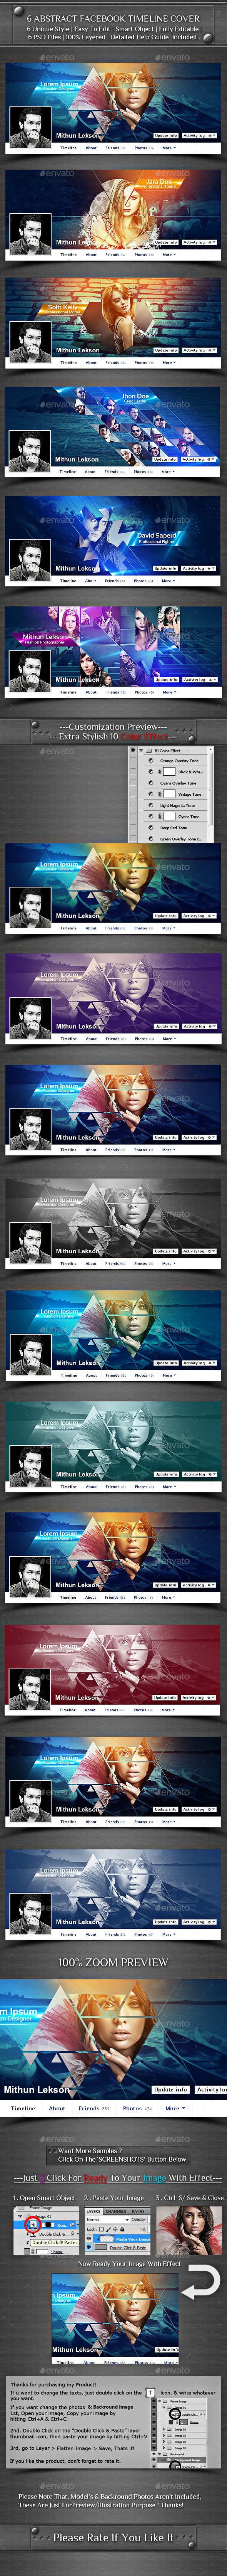 6 Abstract Facebook Timeline Cover - Facebook Timeline Covers Social Media